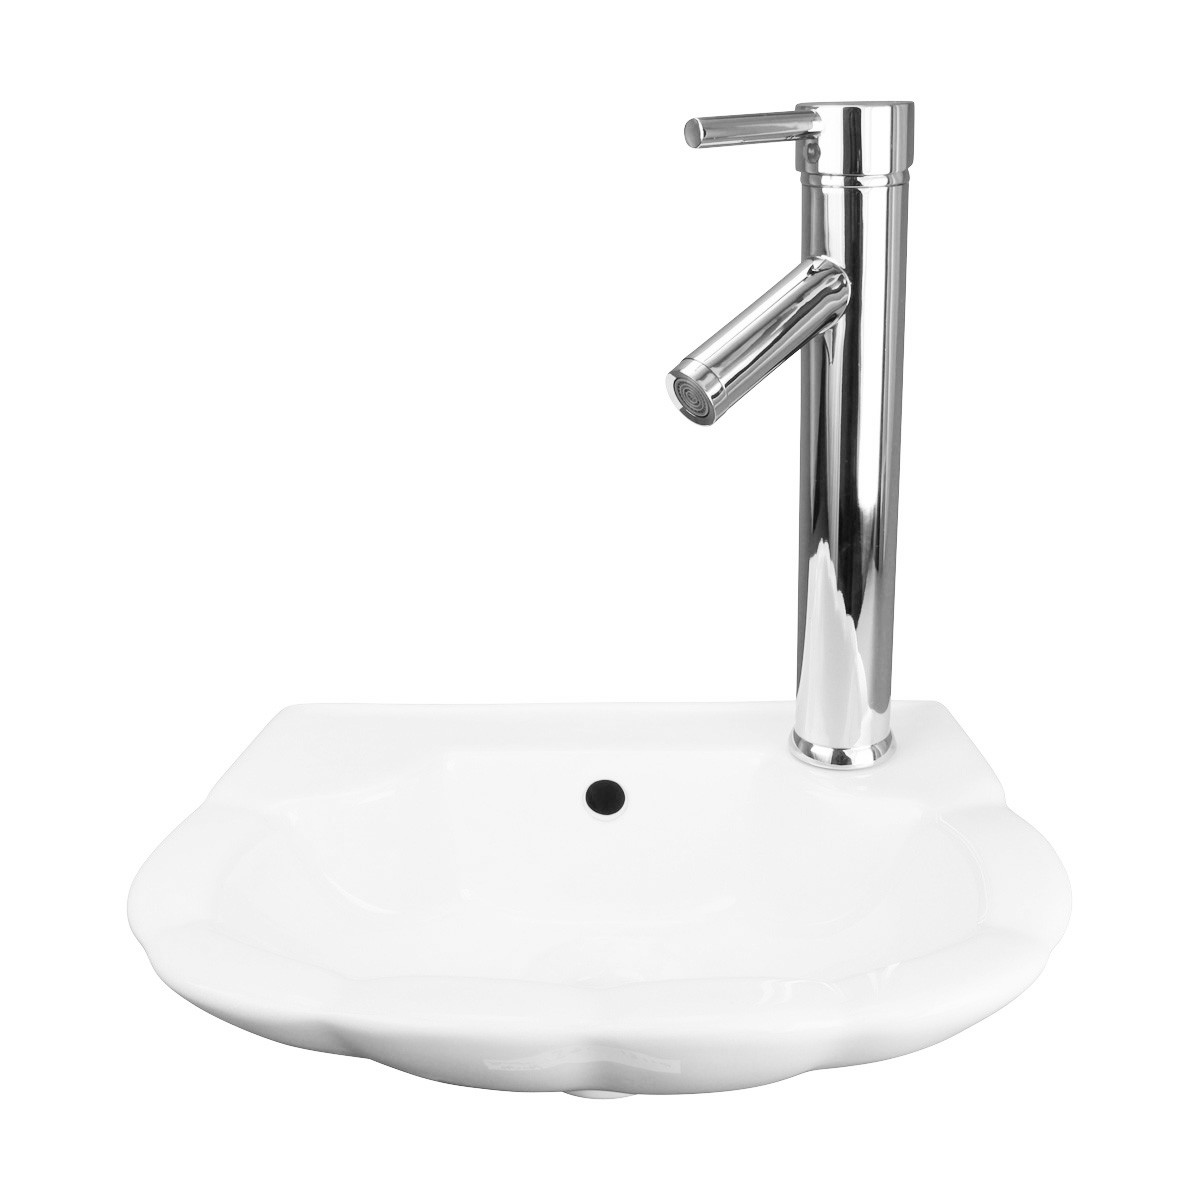 White Periwinkle Wall Hung Sink Renovators Supply 39 S Modern Wall Hung Basin